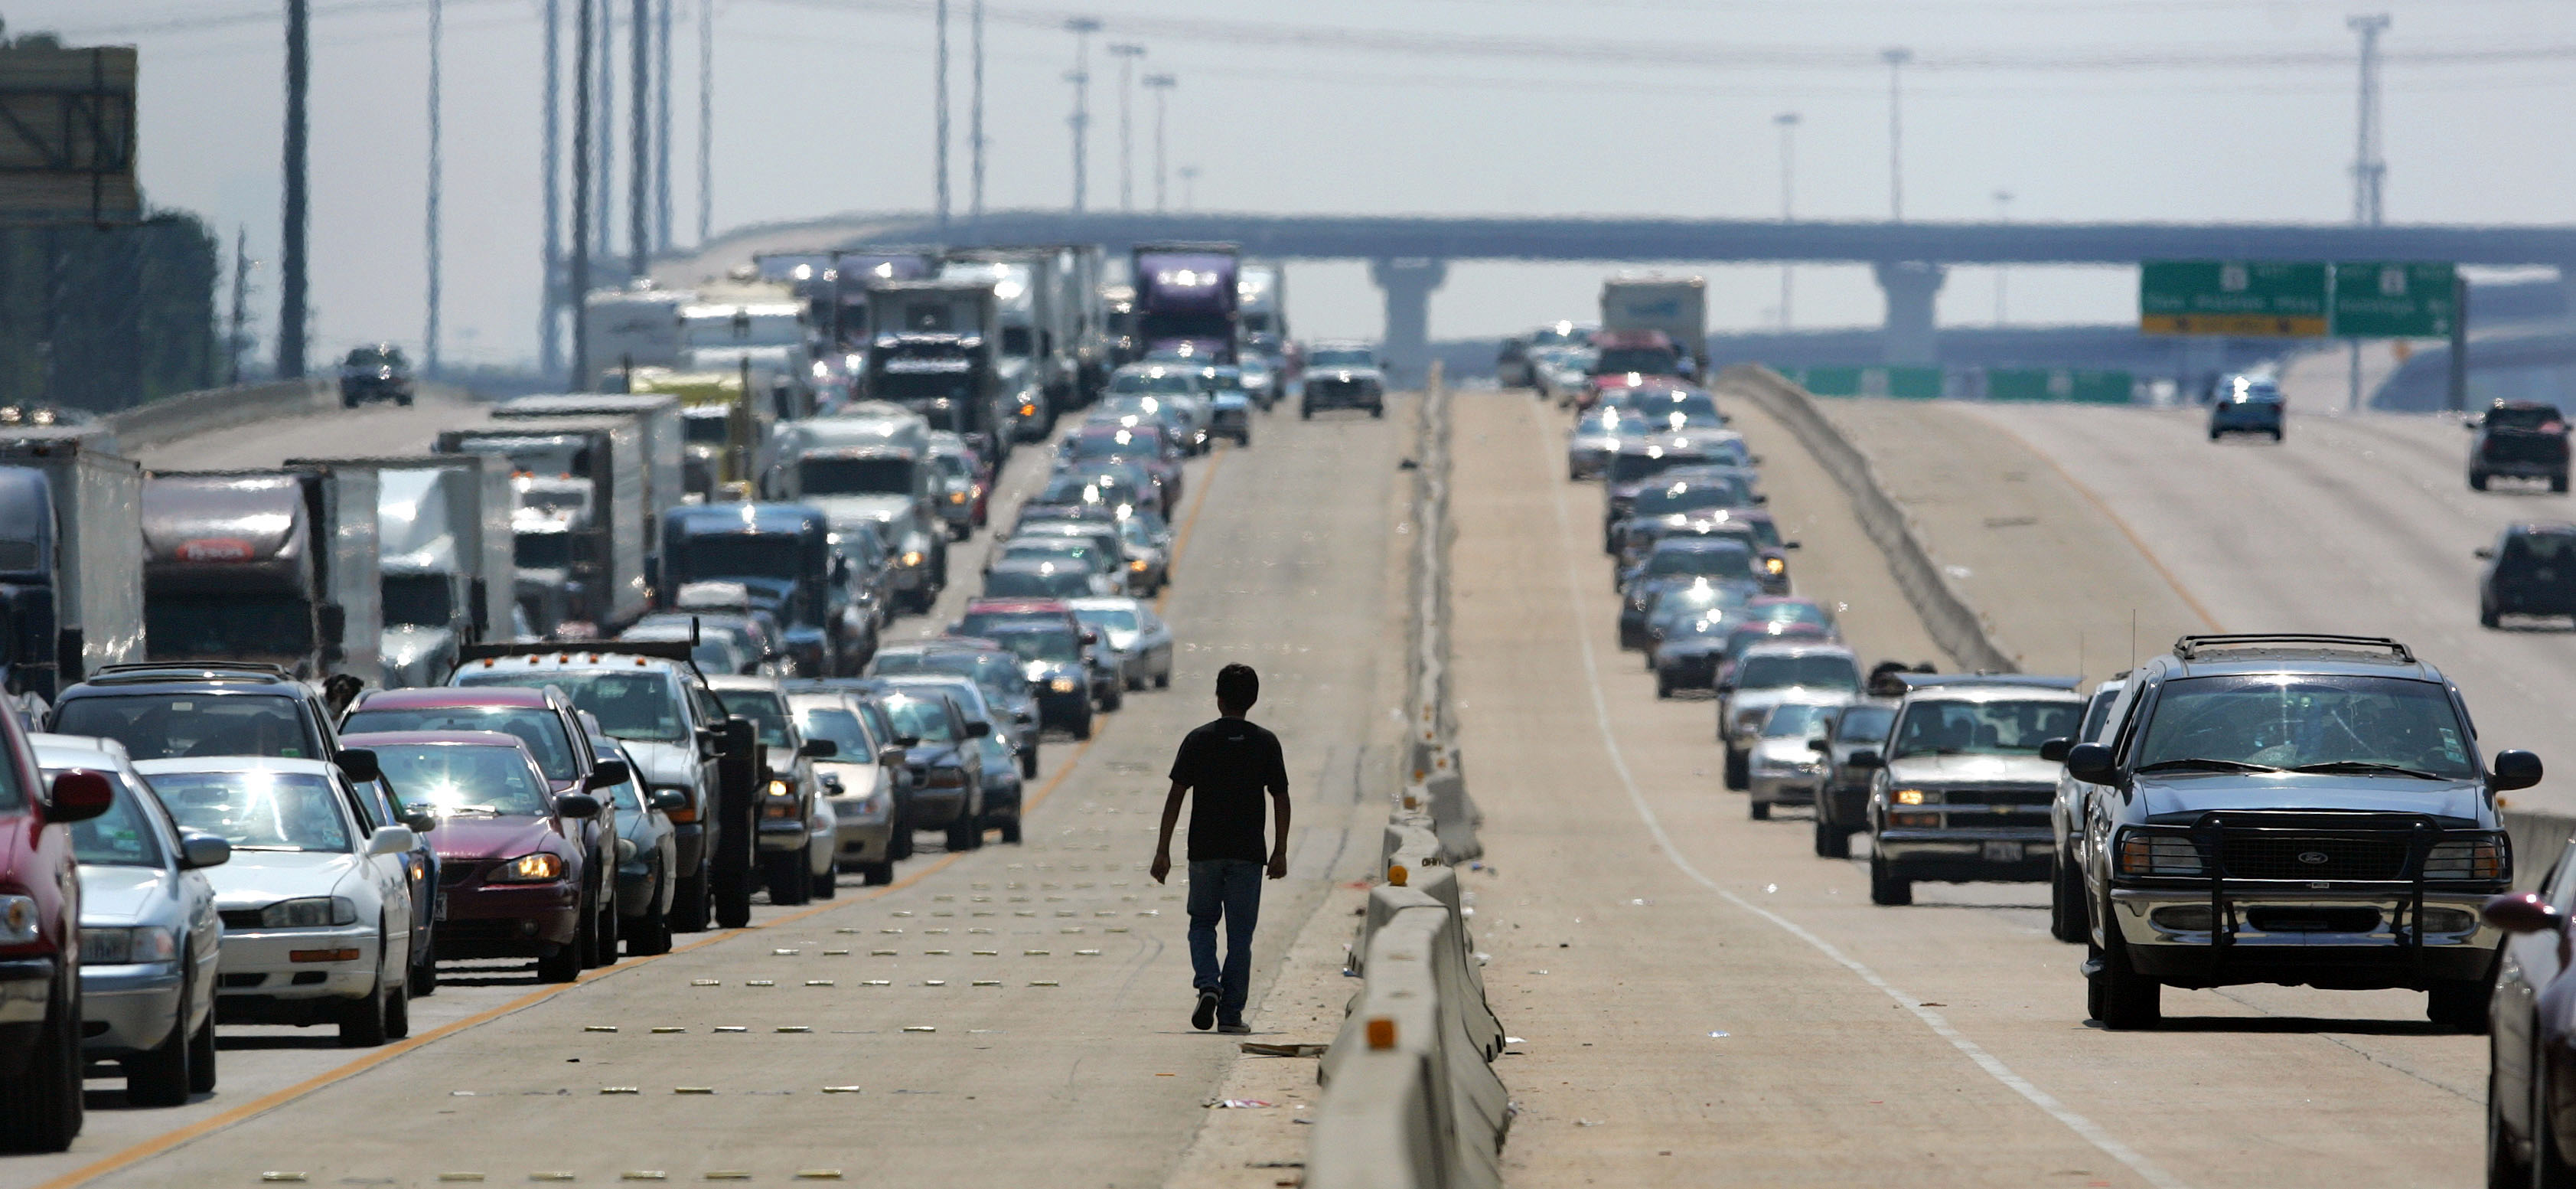 A man walks on a highway as thousands of cars try to evacuate in advance of Hurricane Rita in north Houston September 22, 2005. Hurricane Rita weakened to a still dangerous Category 4 storm with maximum sustained winds of 150 miles per hour, the U.S. National Hurricane Center said in an advisory on Thursday. REUTERS/Carlos Barria - RTRP2ZJ